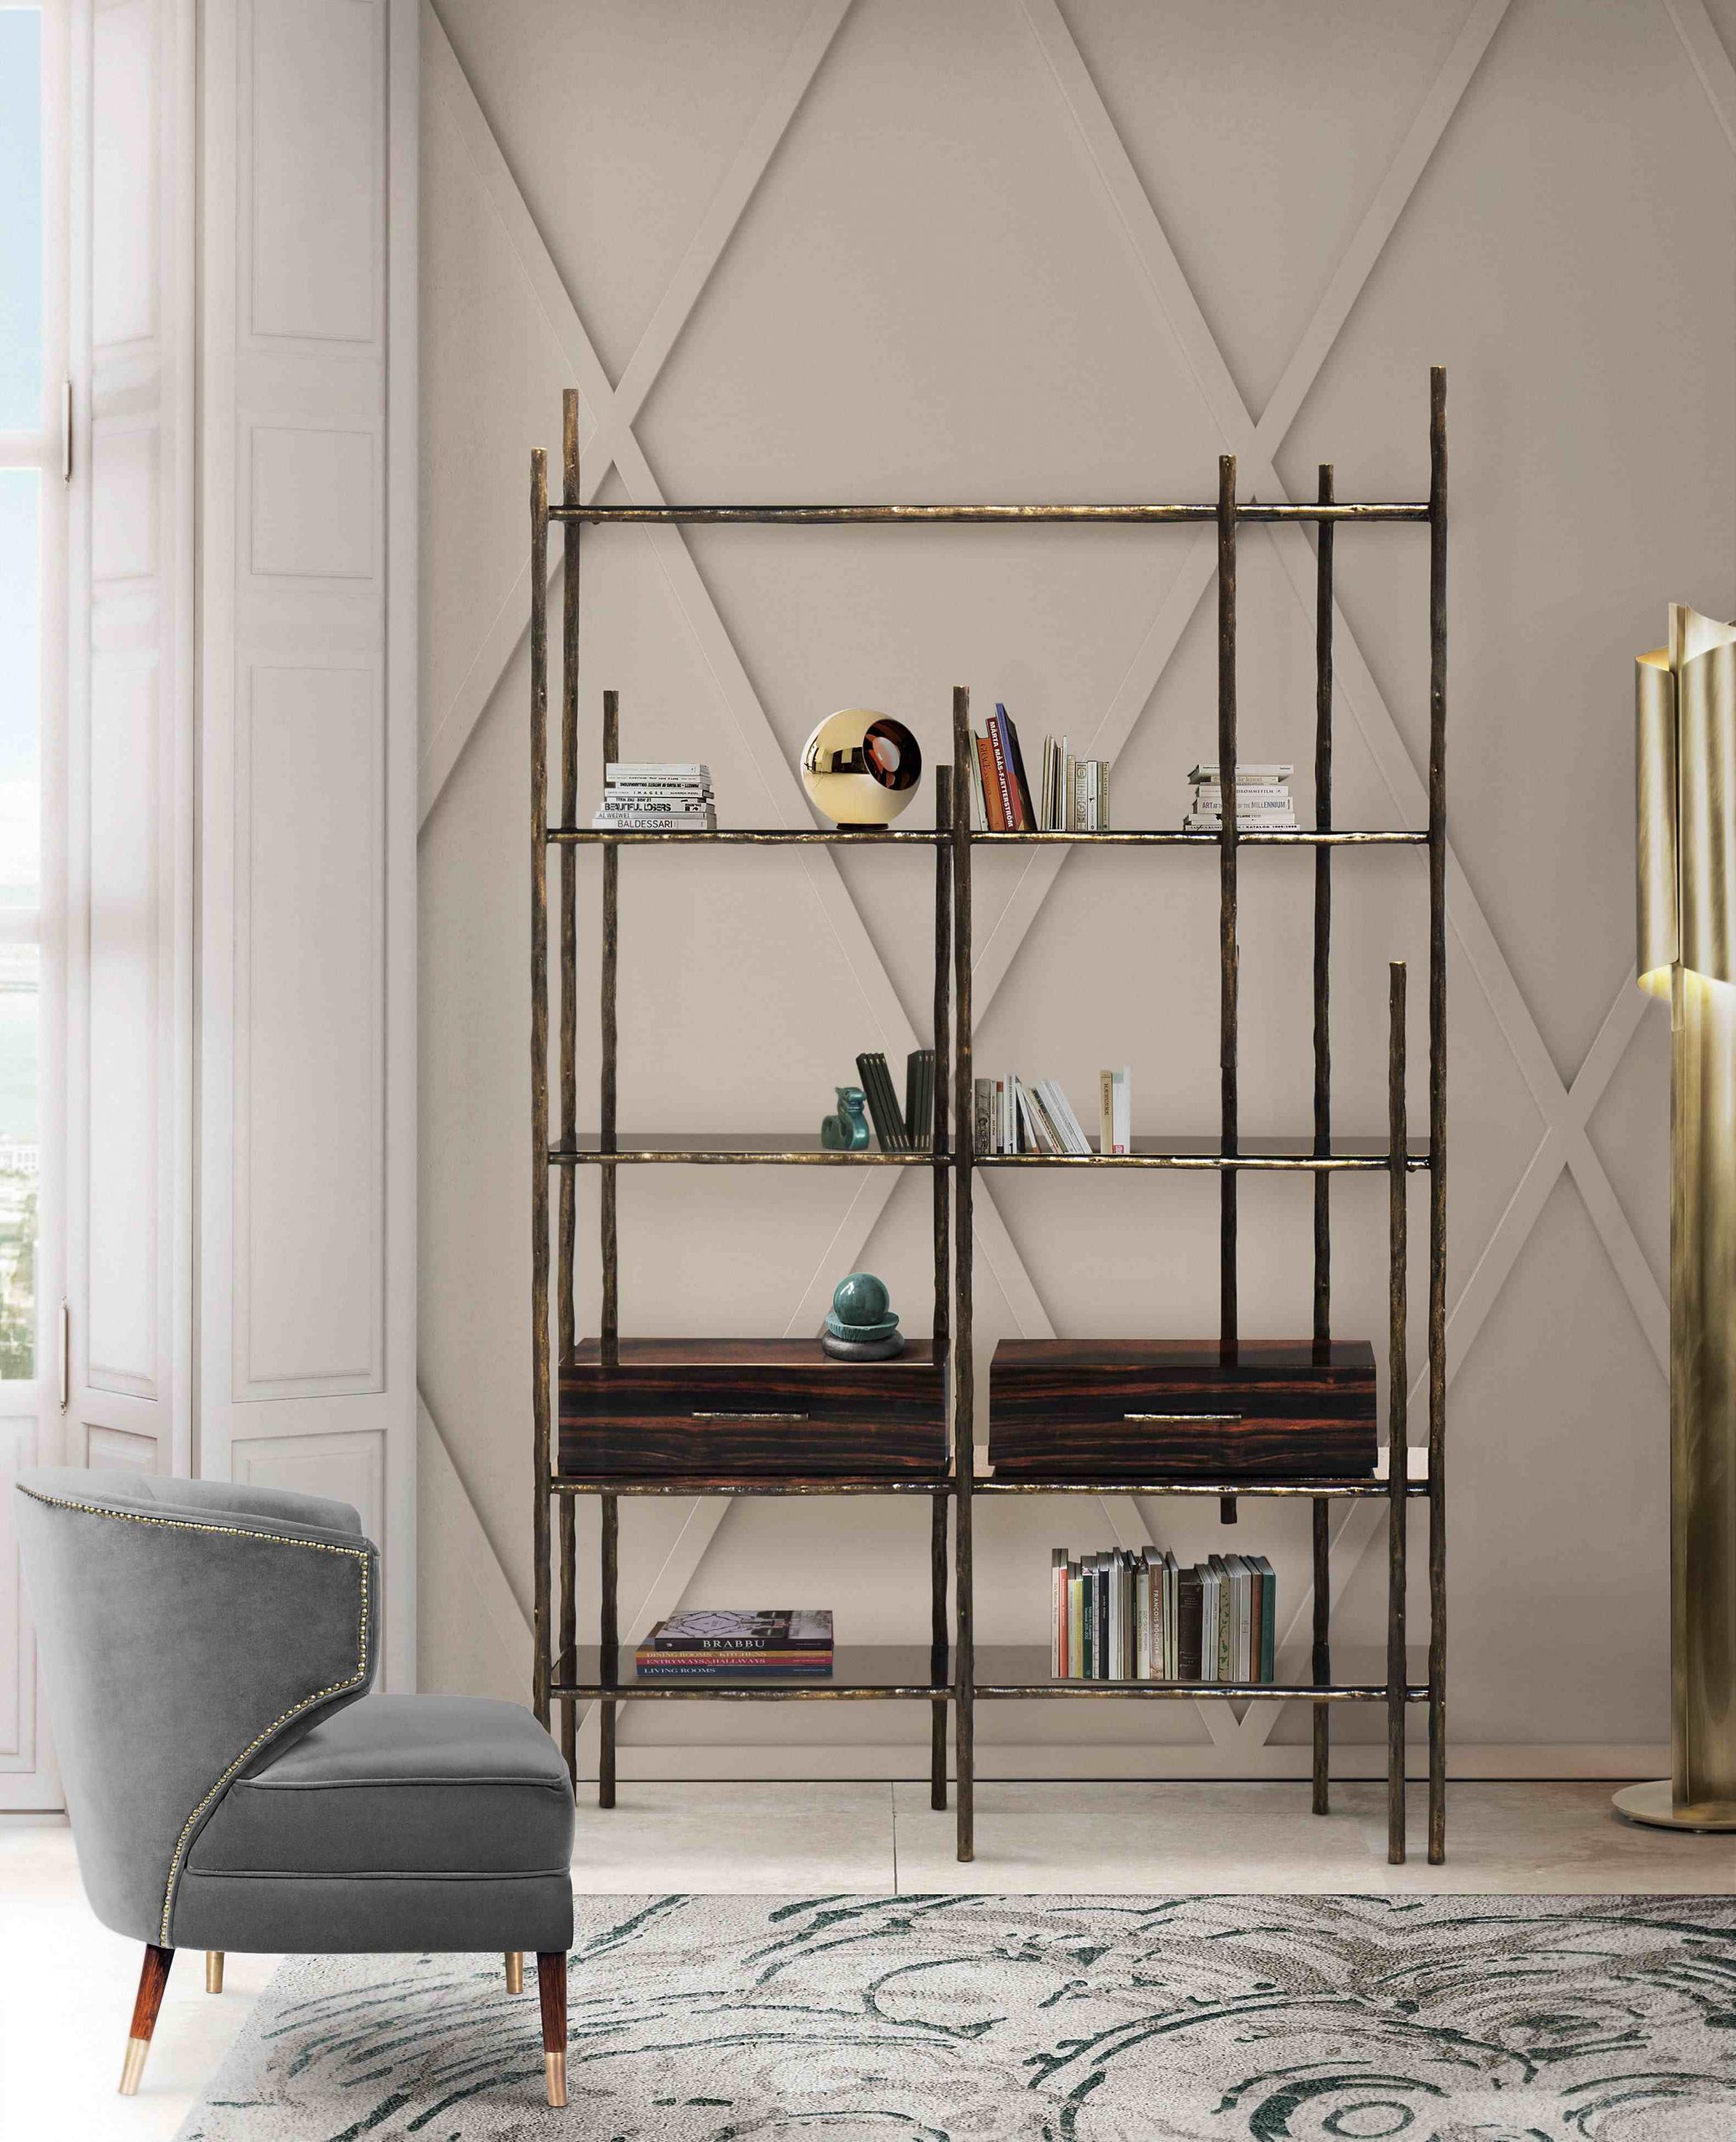 Decor Ideas decor ideas Decor Ideas to Inspire you – Welcome Remote Working Days 129 Mambu Bookcase Ibis Armchair min scaled